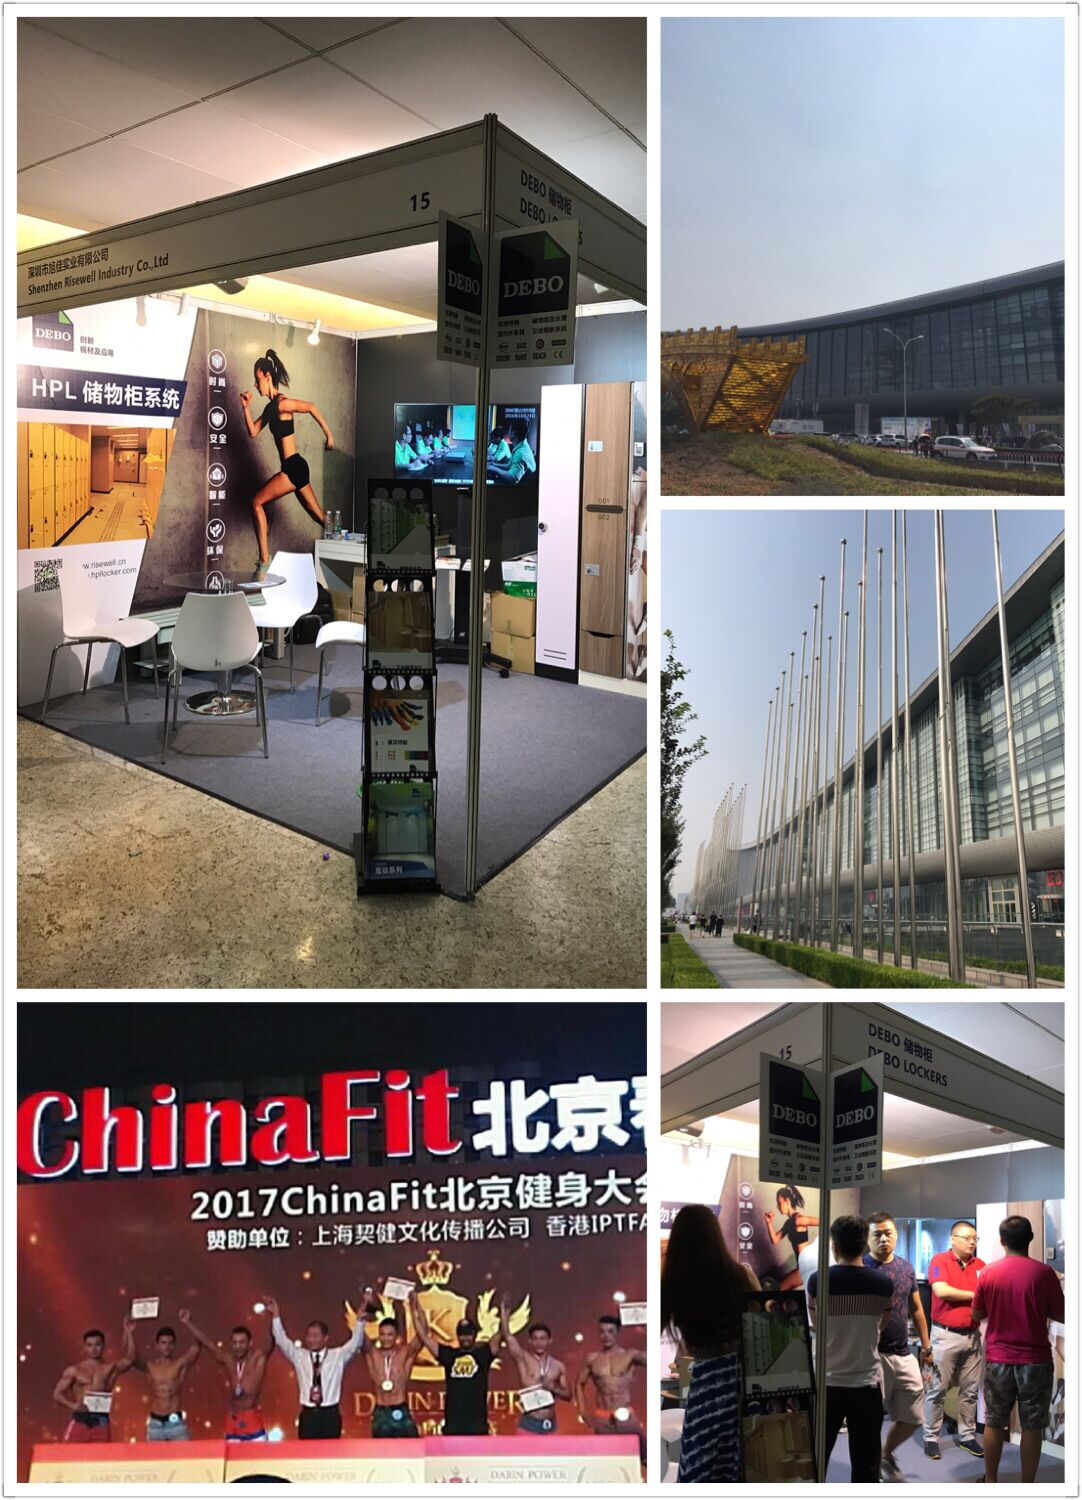 2017China Fit Beijing - DEBO HPL lockers...